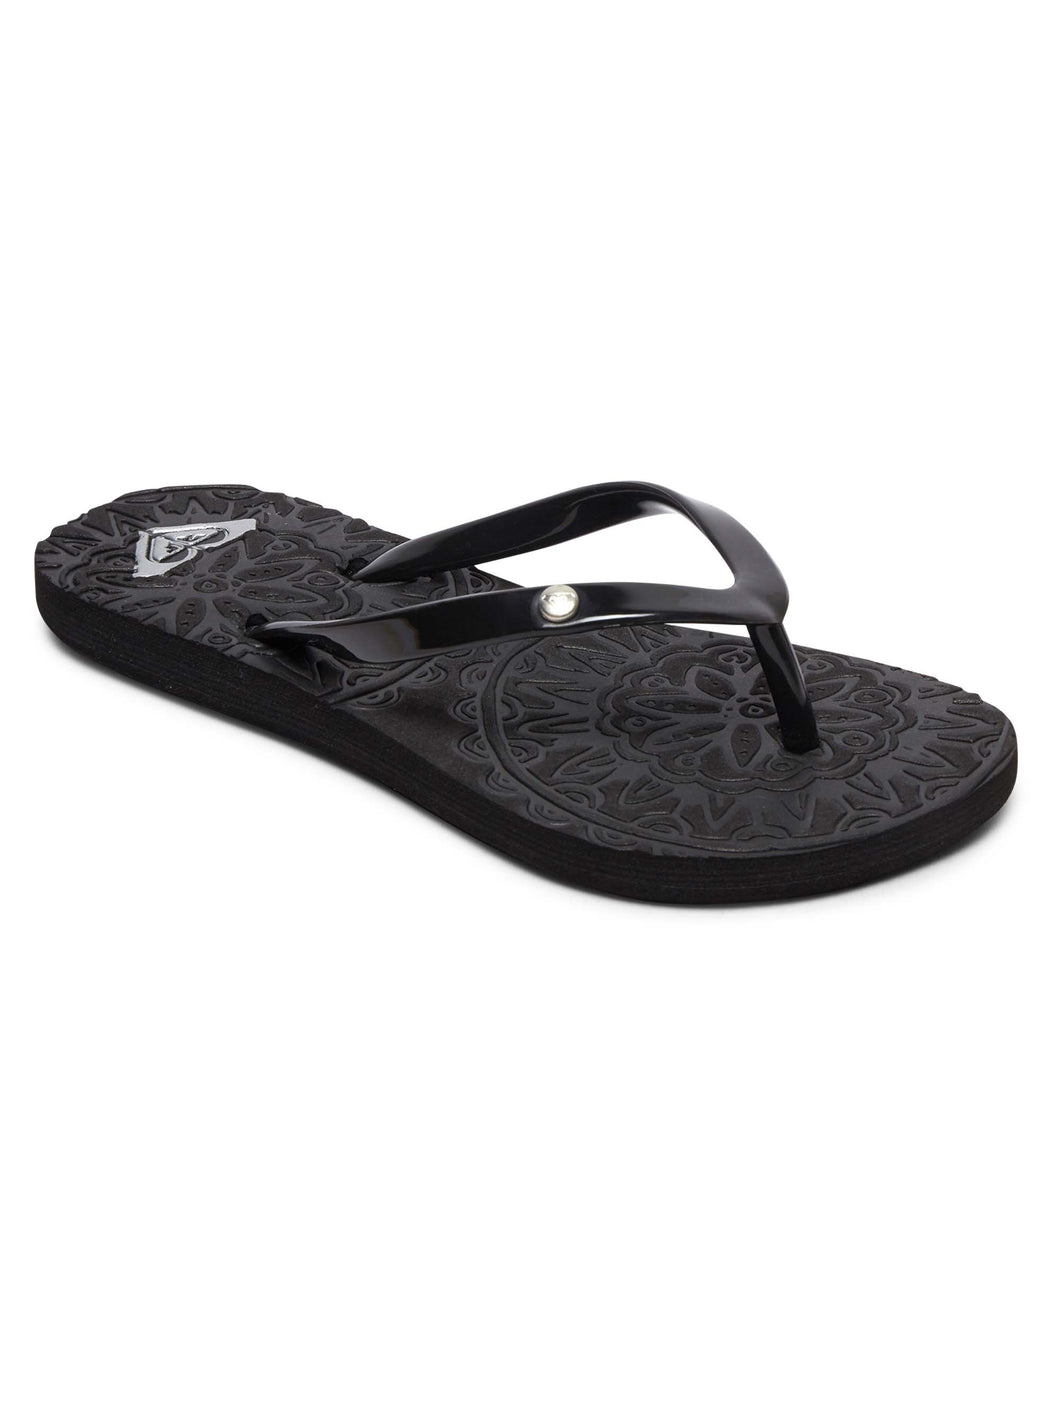 RG ANTILLES THONGS